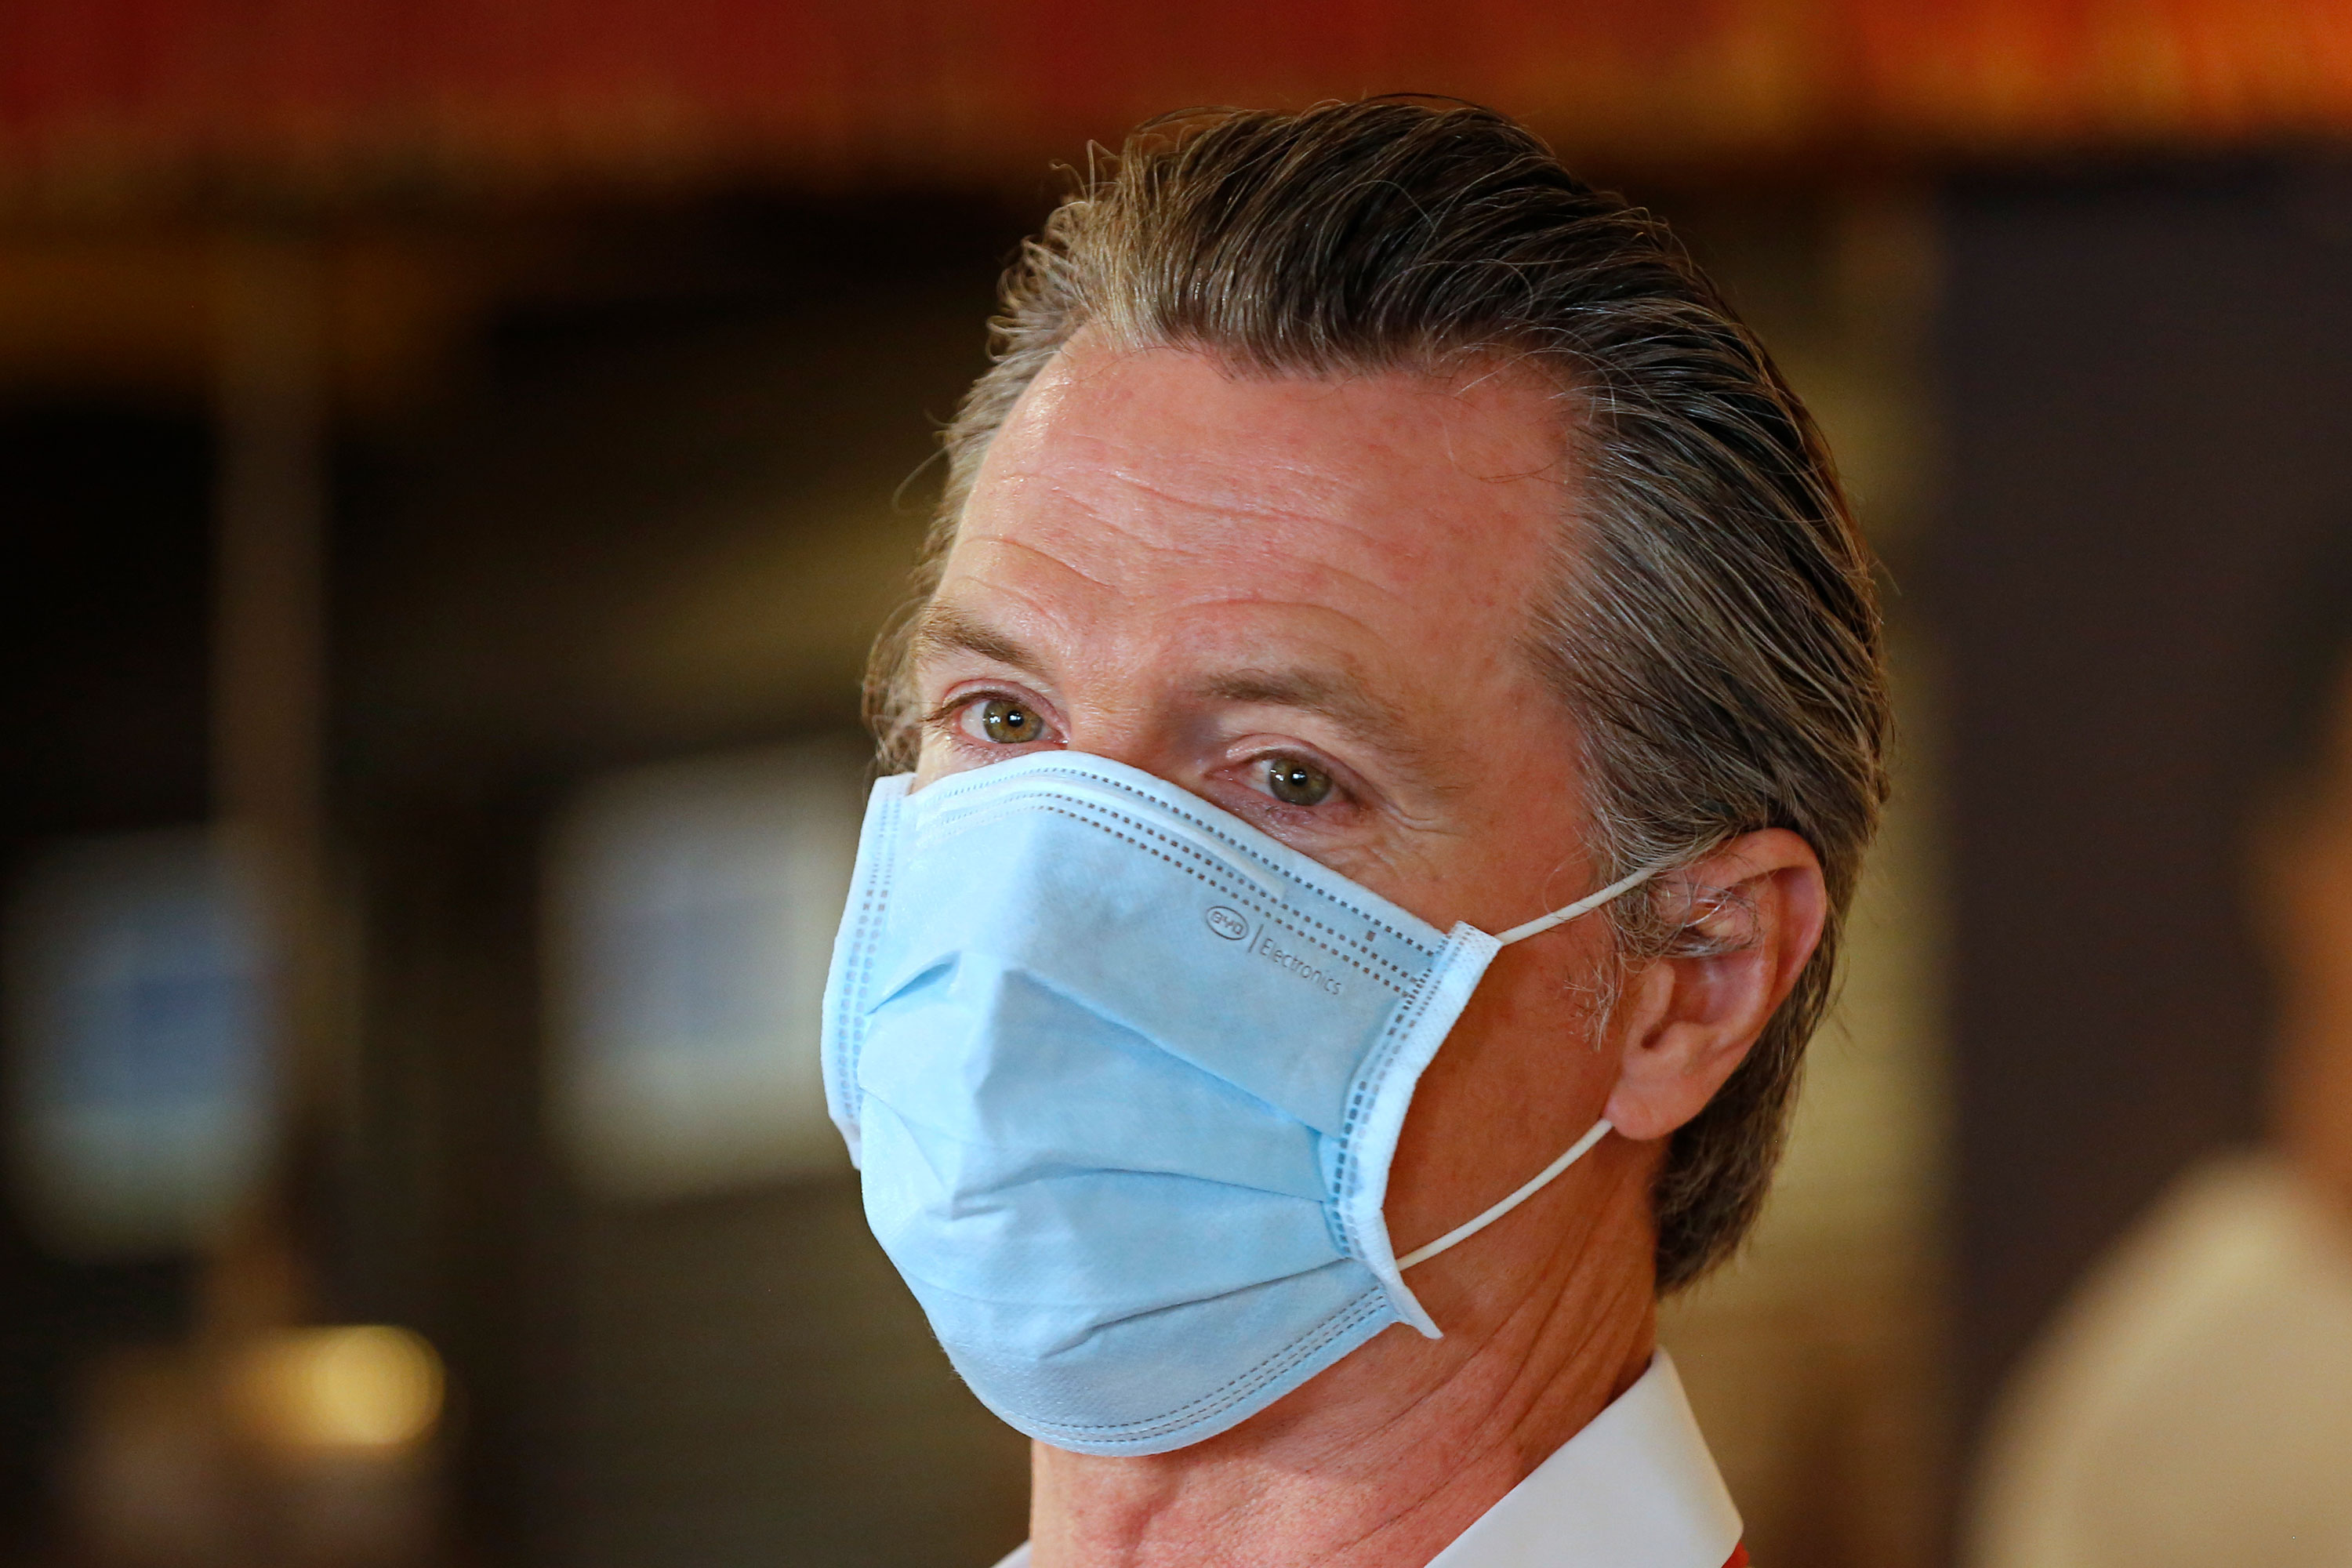 Gov. Gavin Newsom, wears a face mask during his visit to the Queen Sheba Ethiopian Cuisine restaurant on June 19 in Sacramento, California.